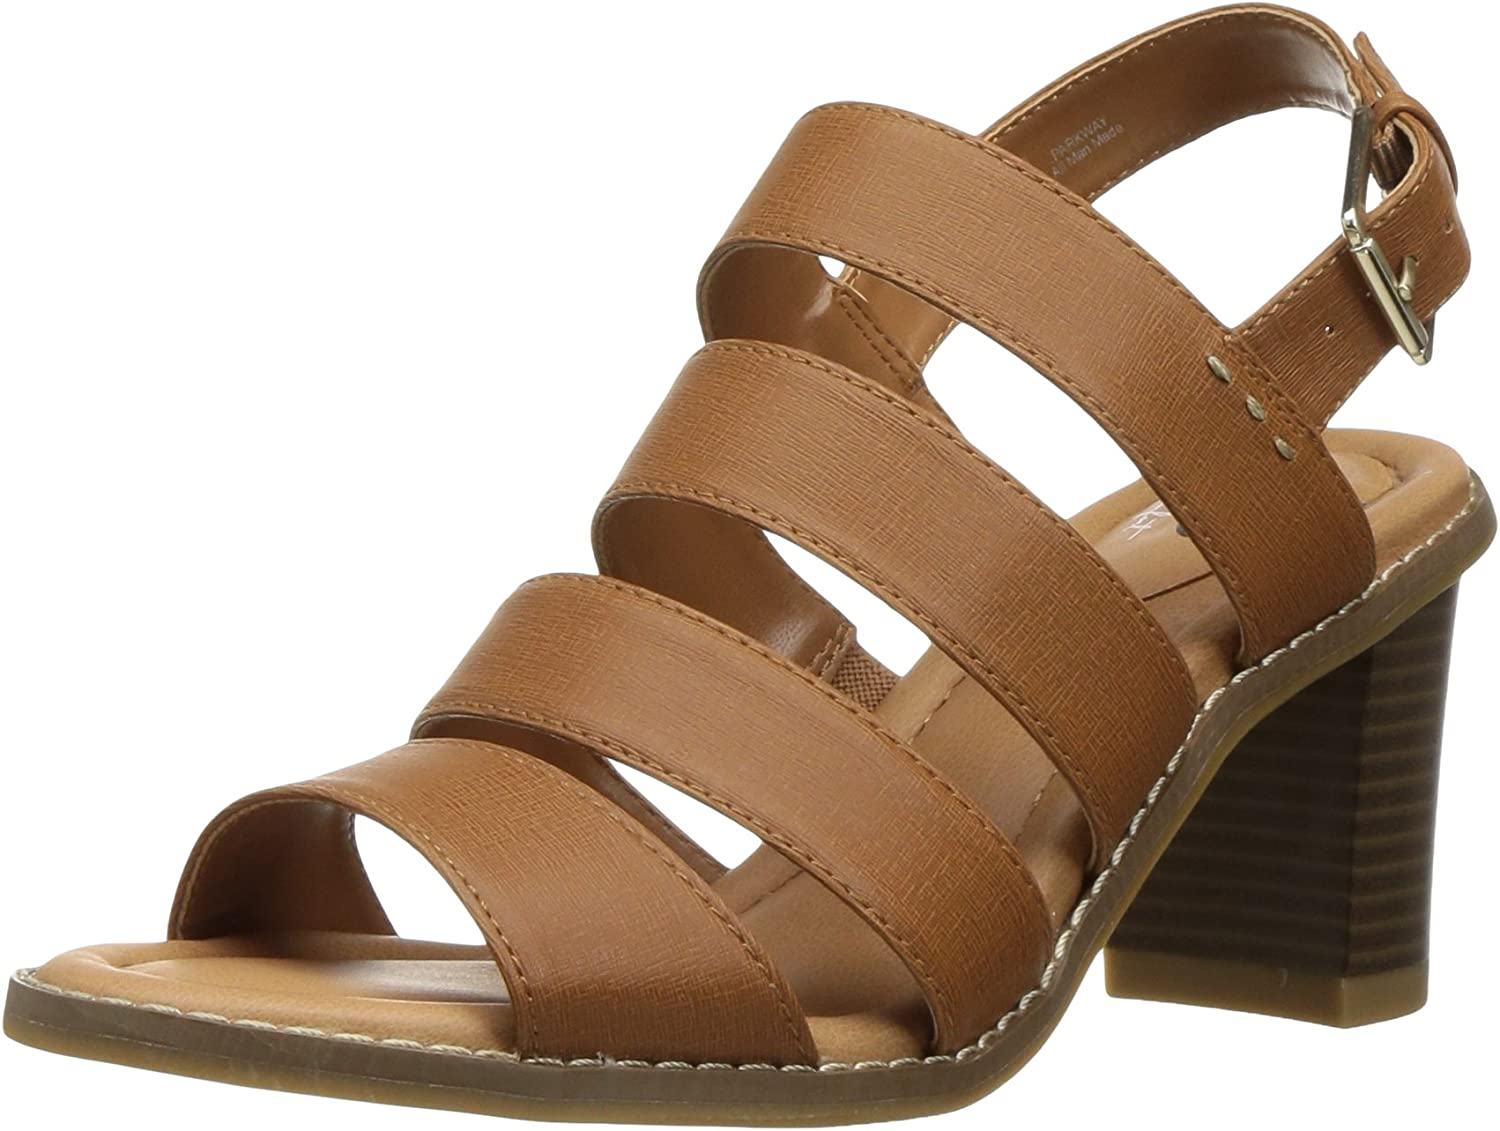 Dr. Scholl's shoes Womens Parkway Dress Sandal